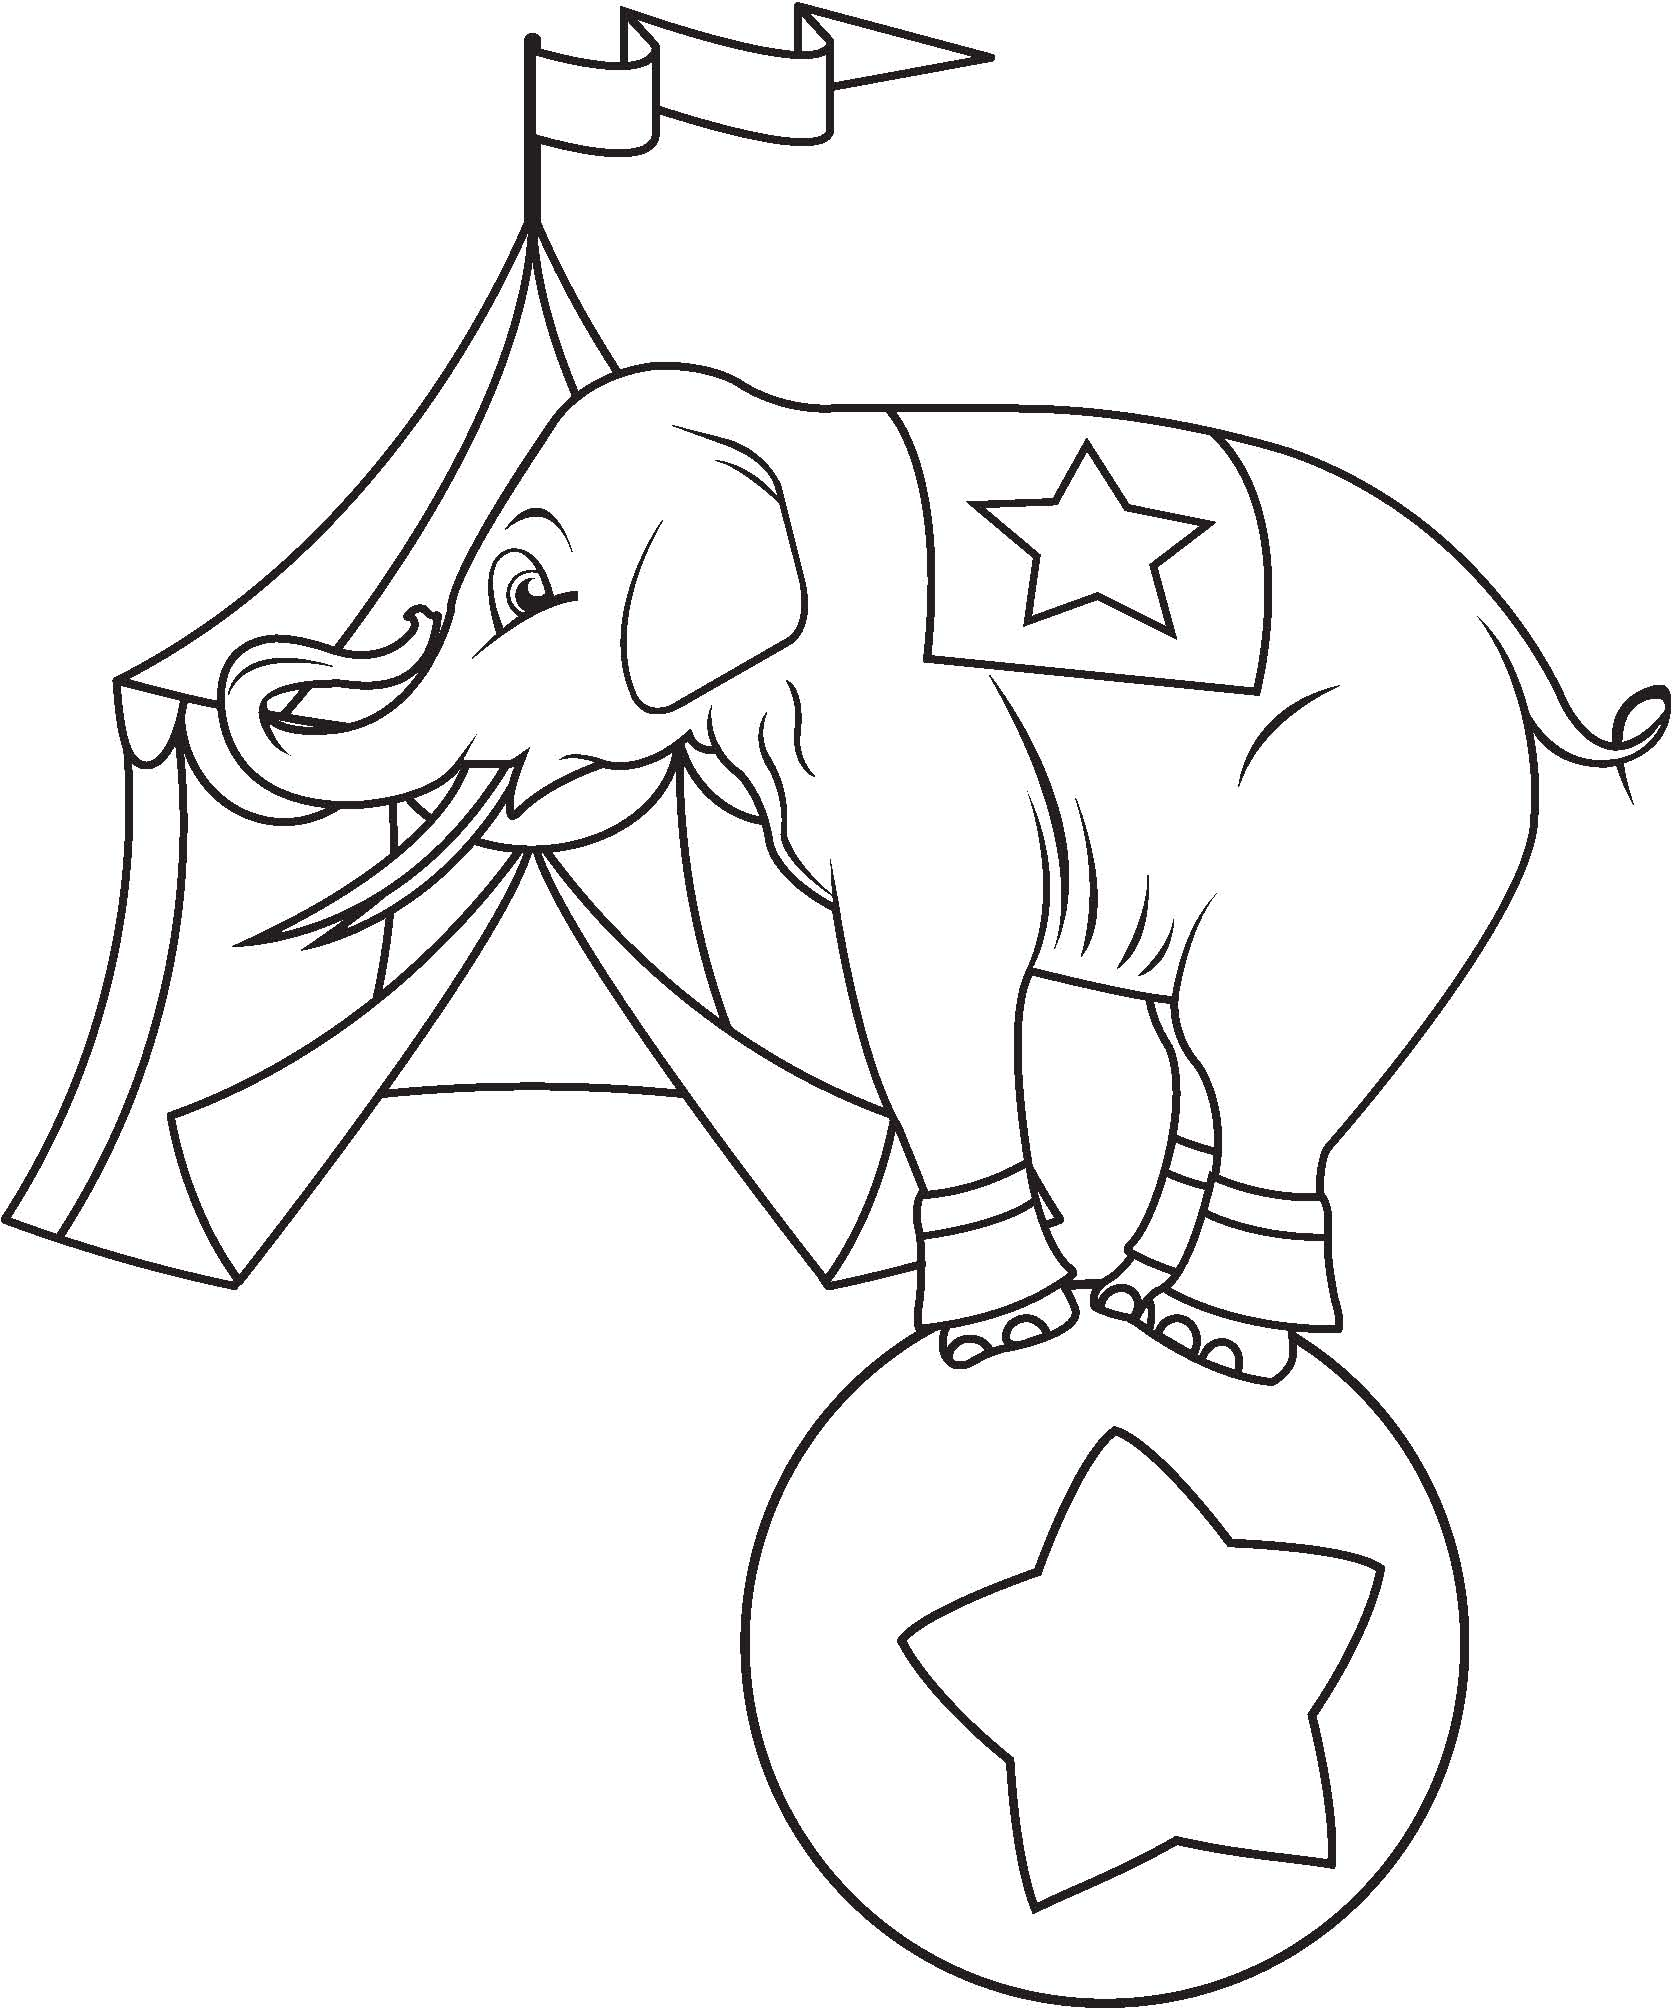 free downloadable circus coloring pages - photo#7